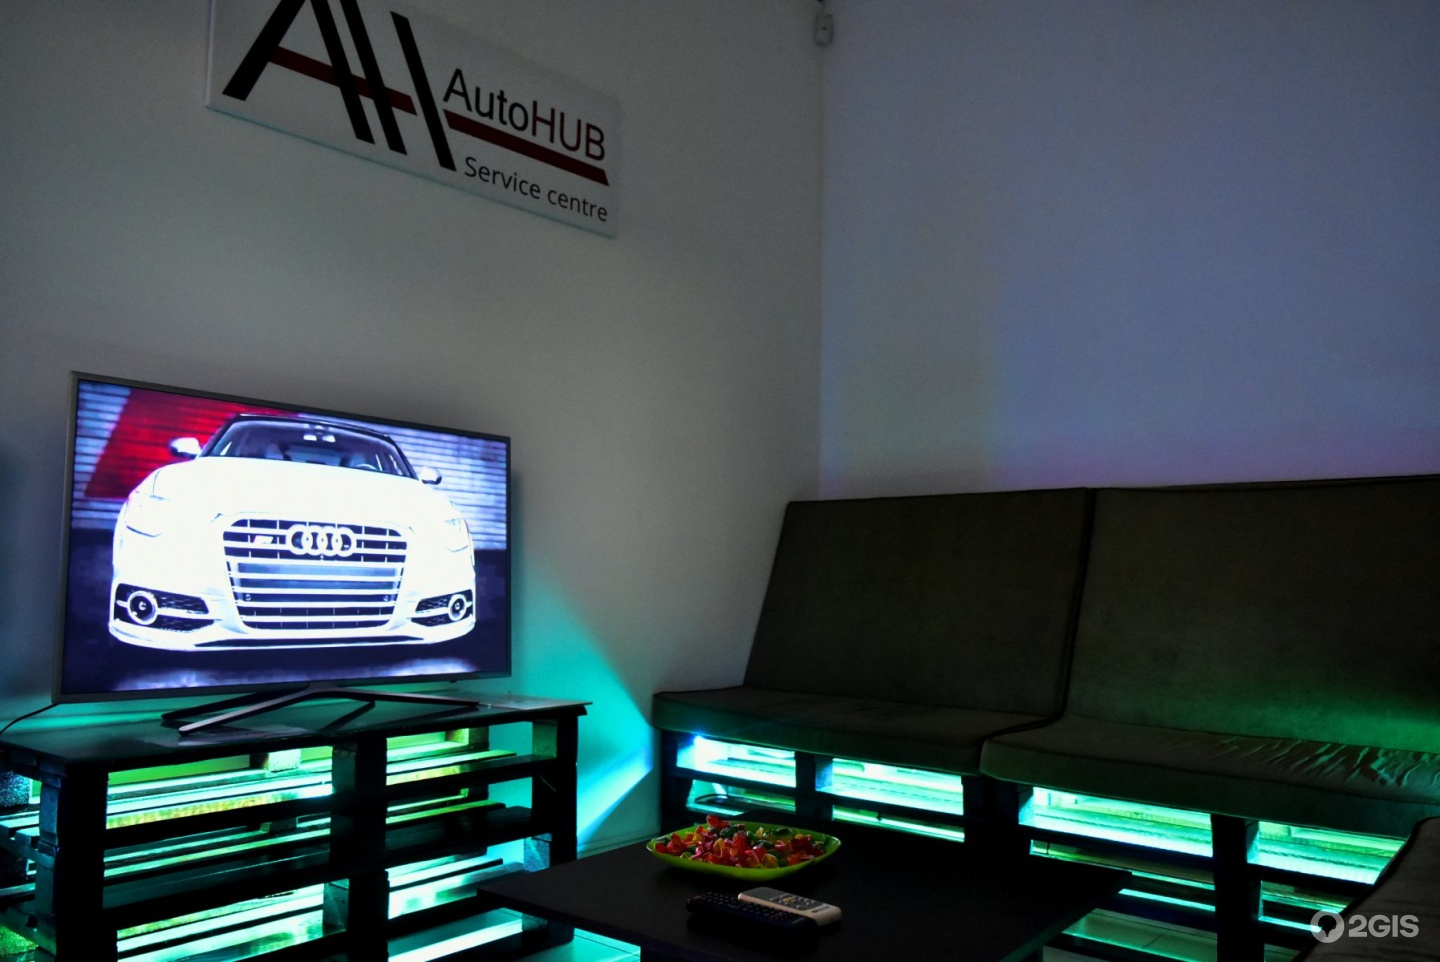 s4s autohub S4s autohub car accessories 43m hygiea spa and wellness center 44m cocoy mami pares steaks & chops 45m show more hassan kabab and steaks, visayas ave, quezon city 46m chef's fusion 46m hassan kabab and steaks 47m sgs dental manila 47m hassan kabab and steaks, visayas ave,qc 50m hygeia spa visayas ave 51m.